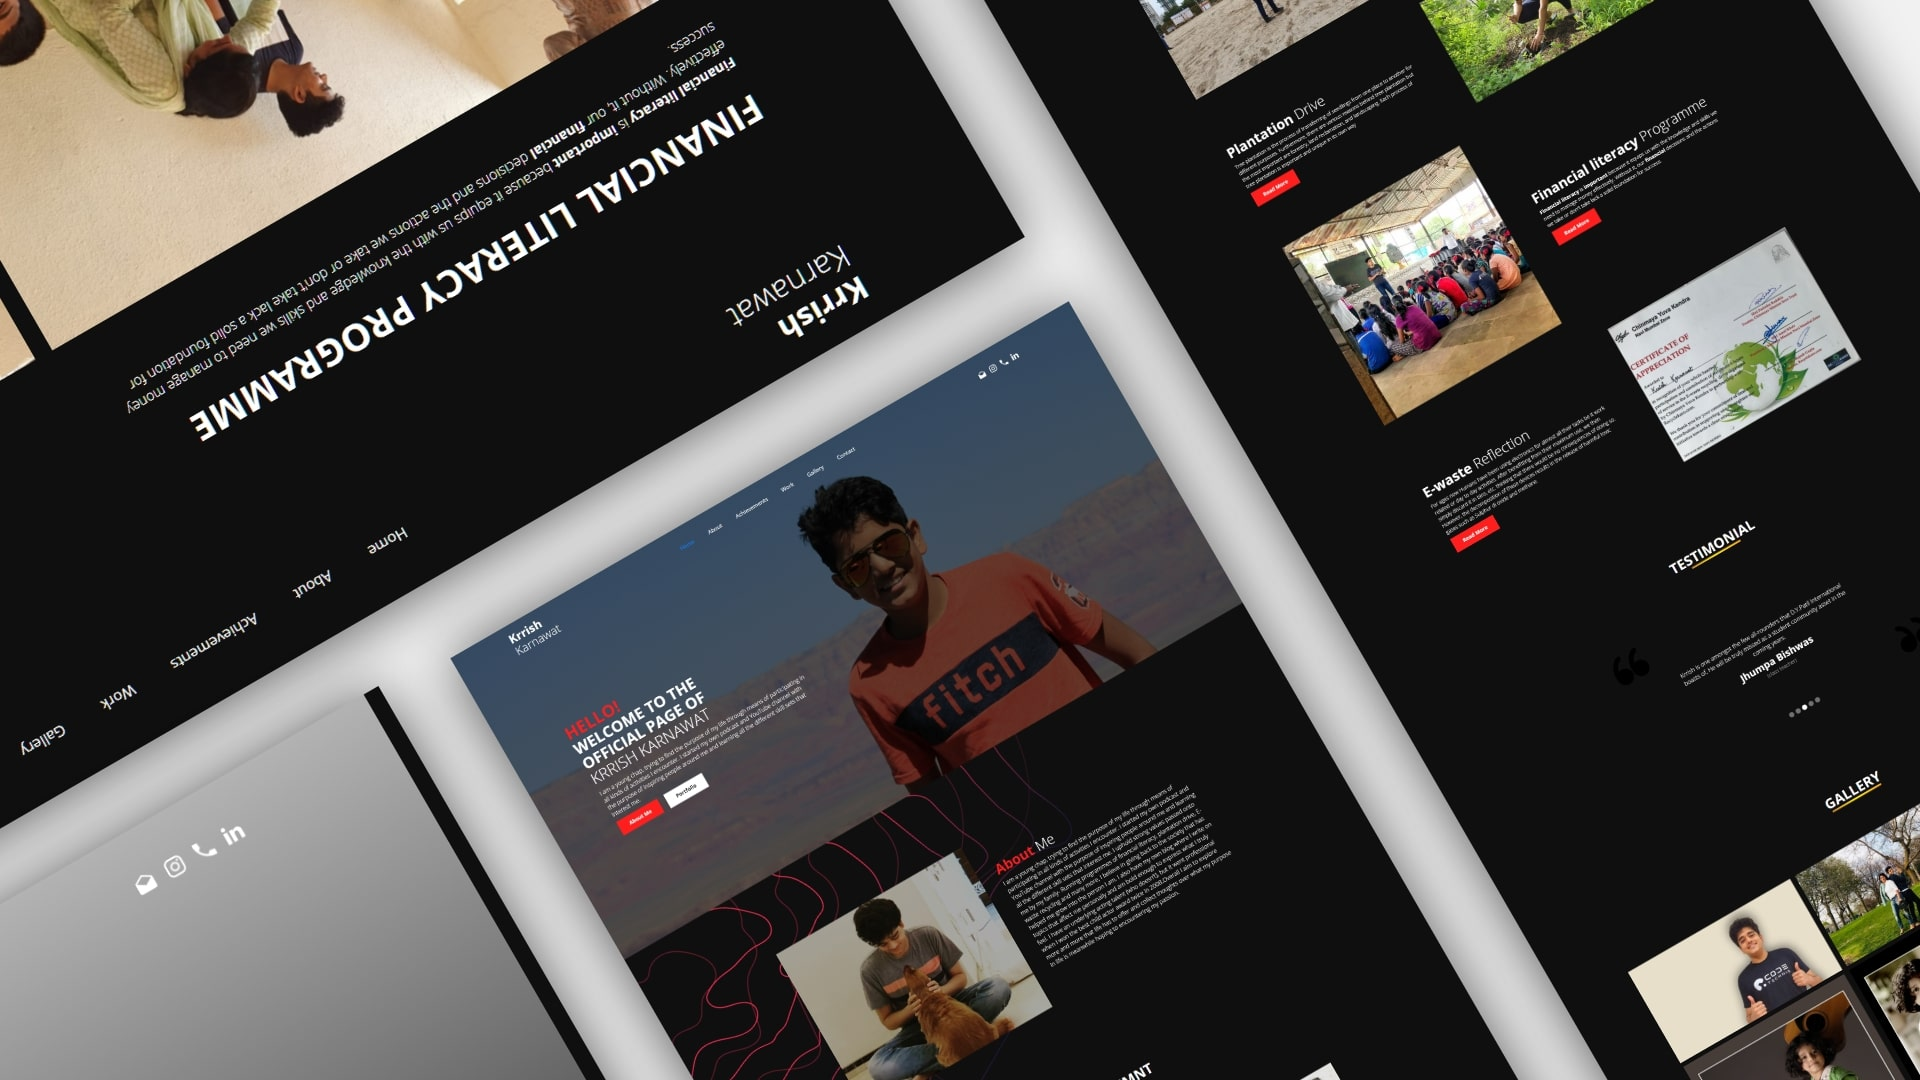 krrish karnawat Student Portfolio Website design